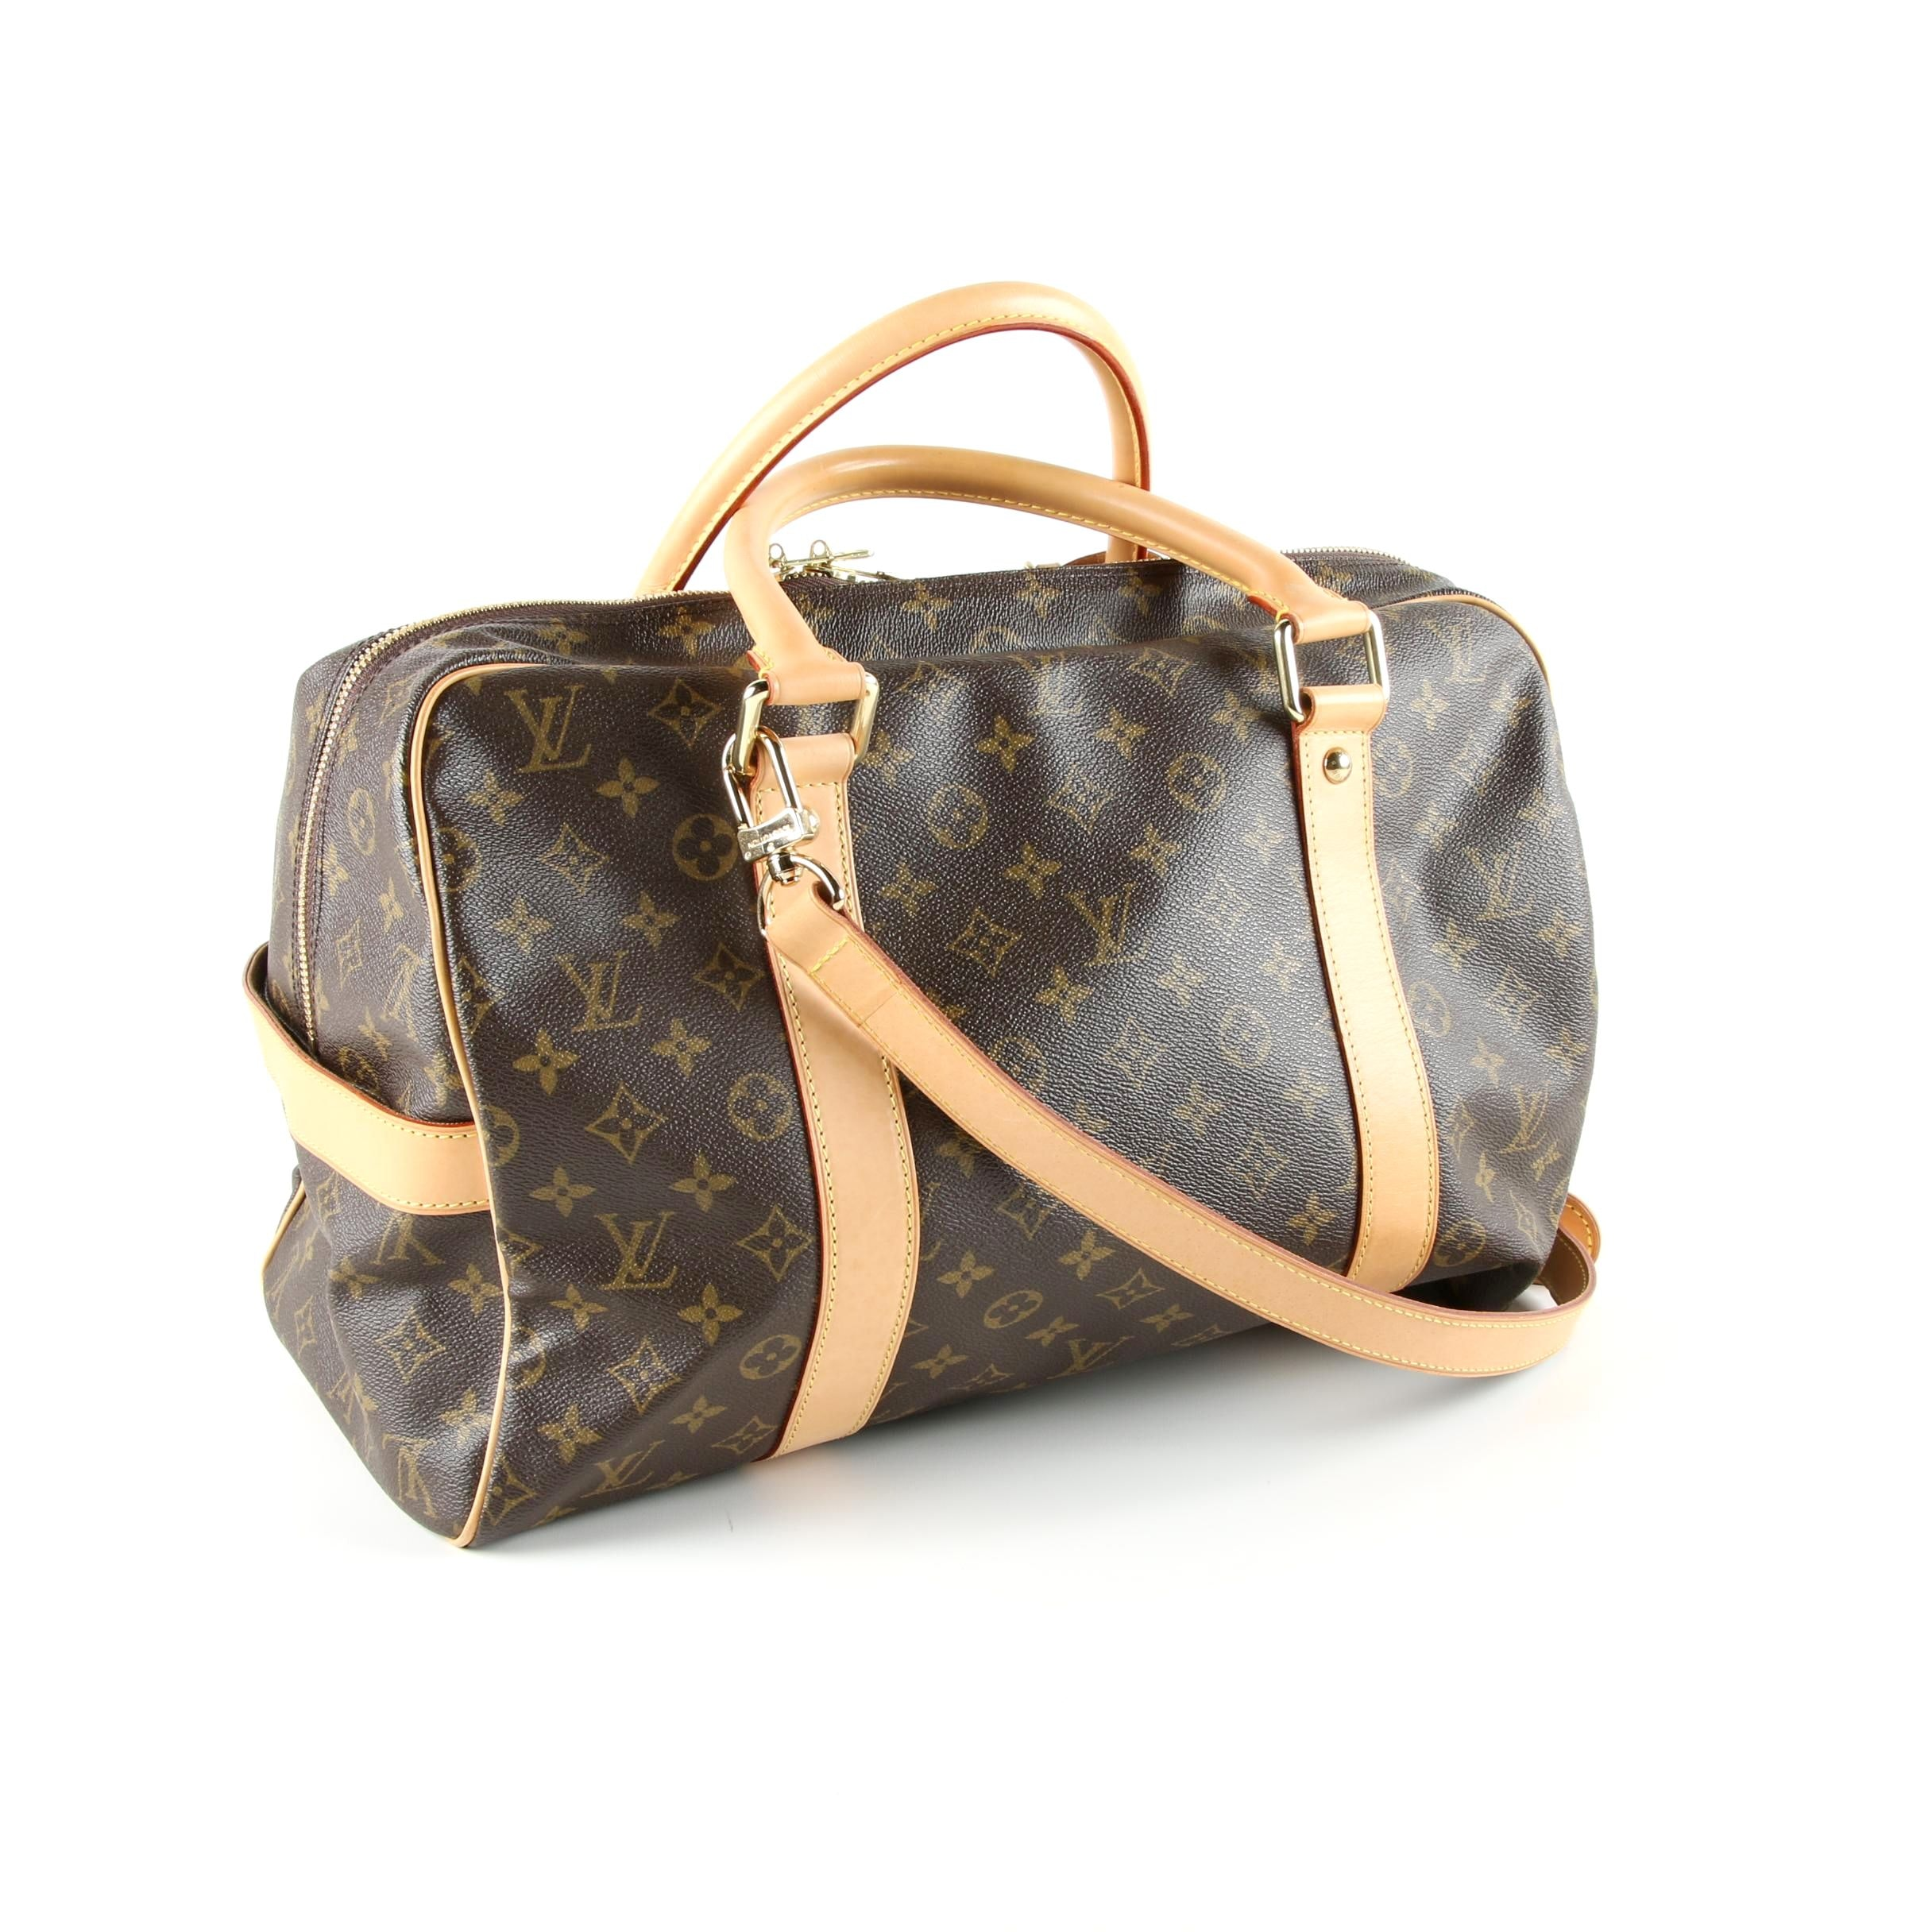 Louis Vuitton Monogram Carryall